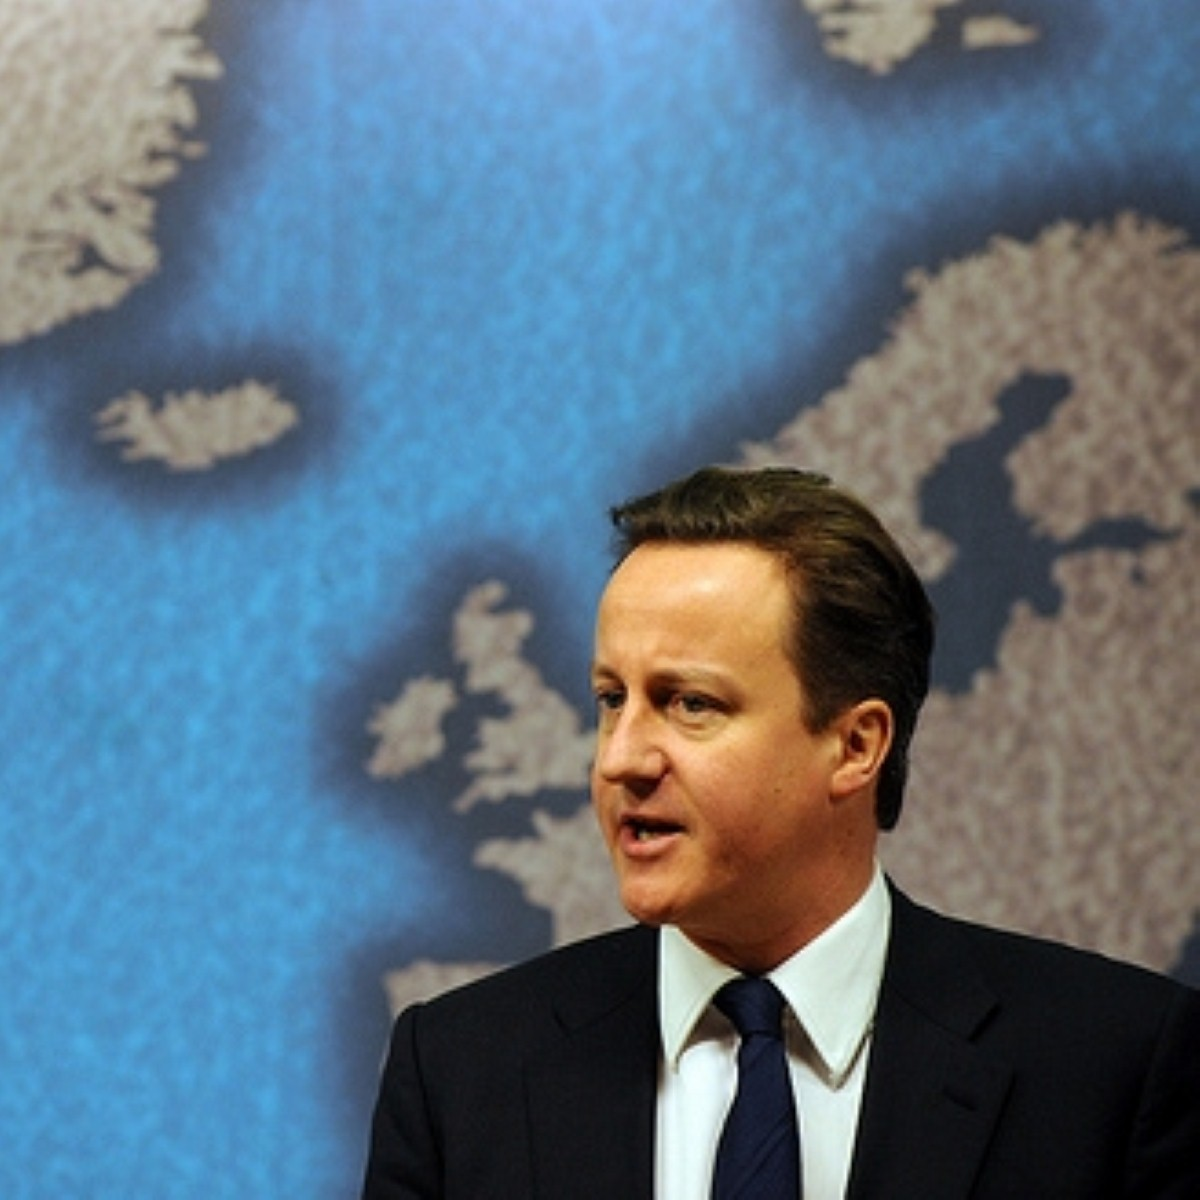 Accepting Europe: Cameron's EU speech is expected to be a game-changer